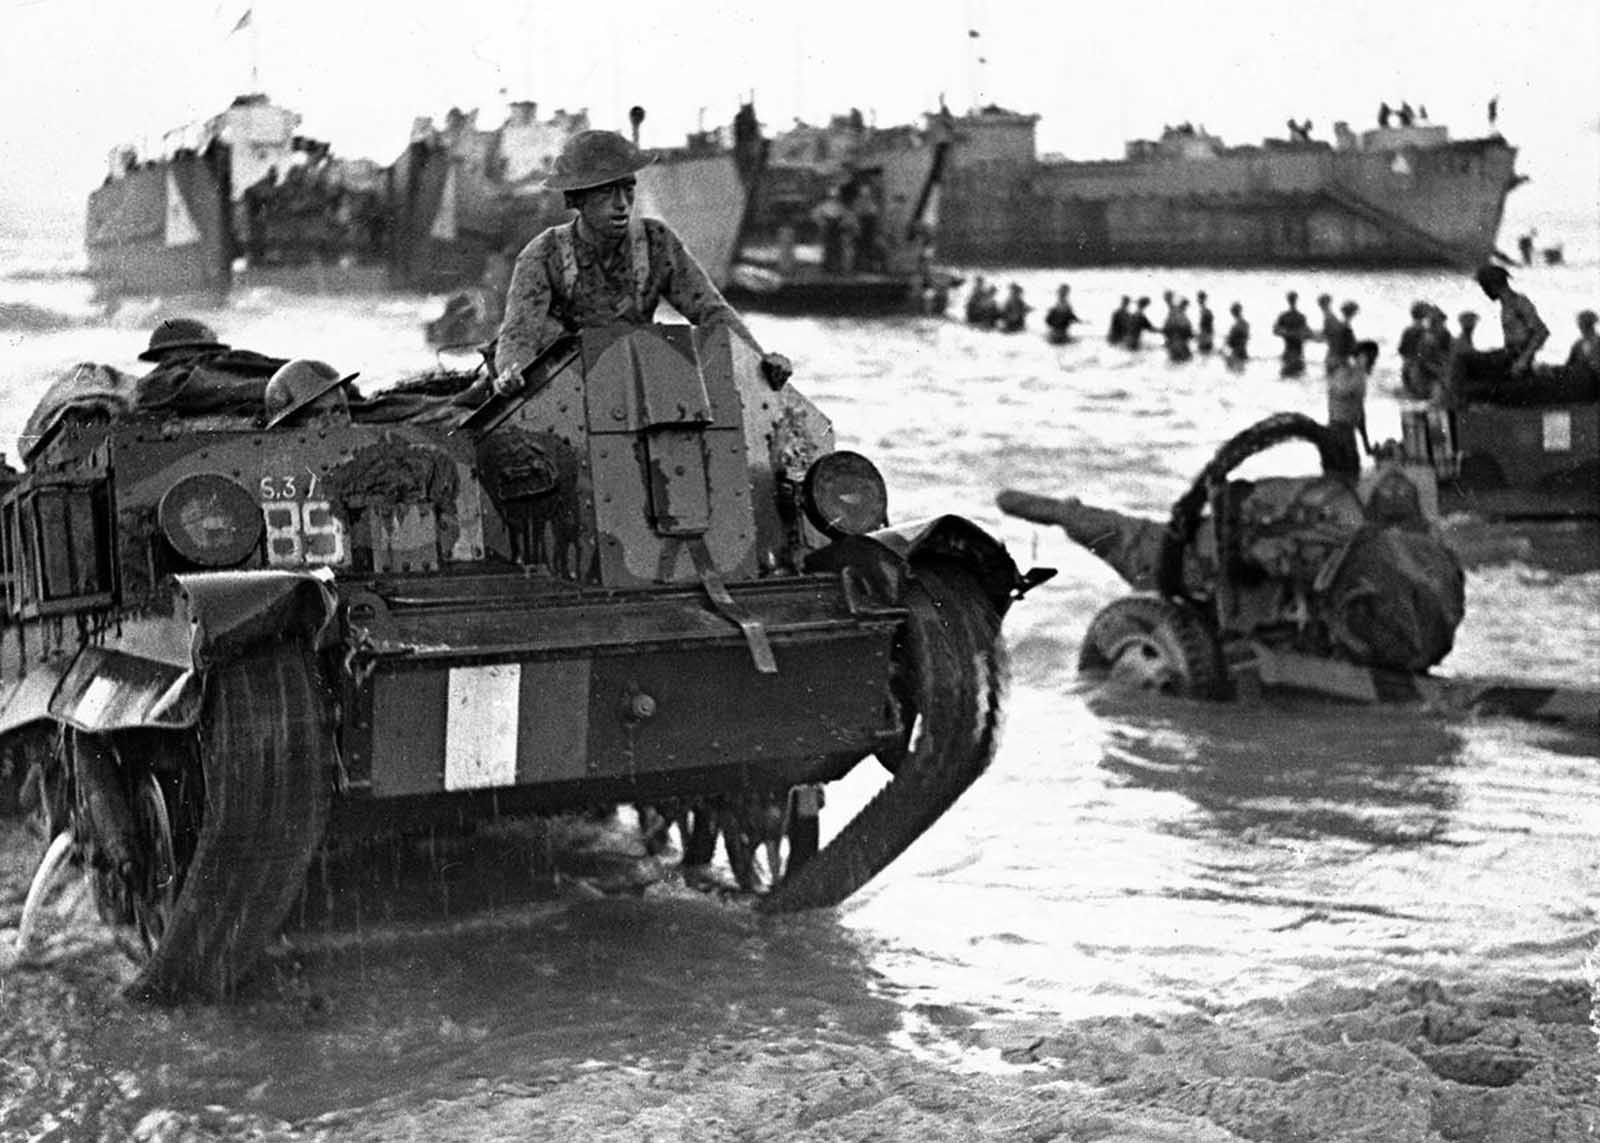 In July of 1943, Allied Forces' troops, guns and transport are rushed ashore, ready for action, at the opening of the Allied invasion of the Italian island of Sicily.